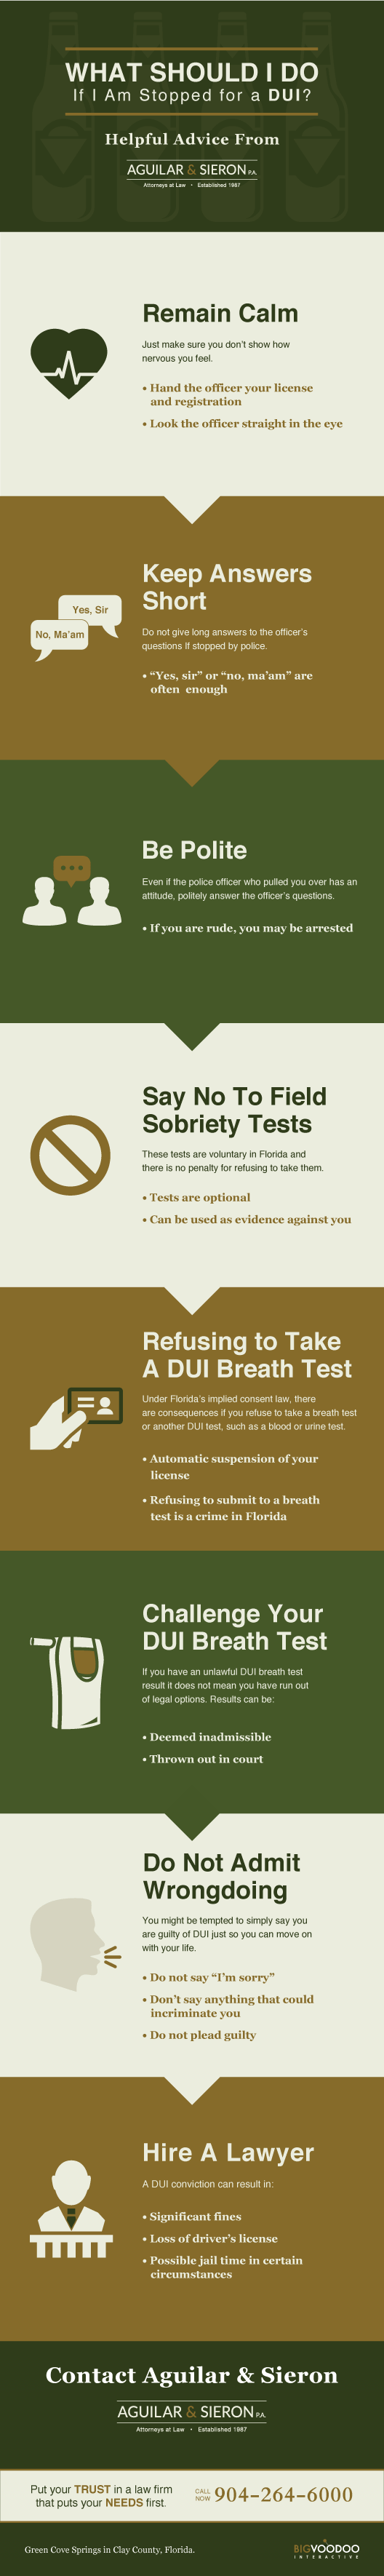 Stopped For Drunk Driving Infographic